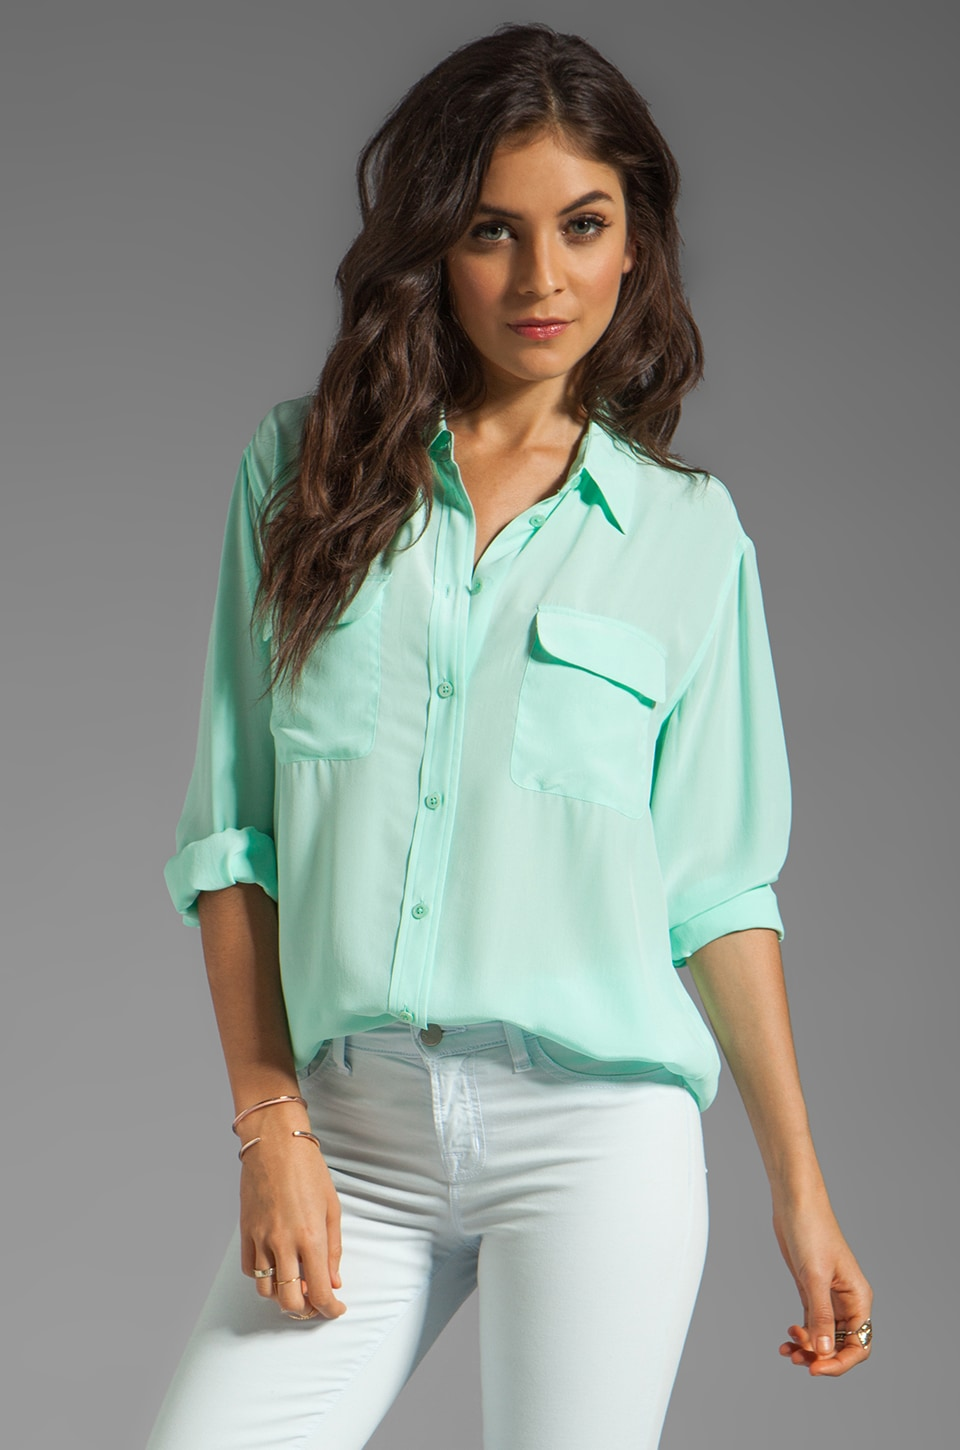 Equipment Signature Blouse in Ice Green